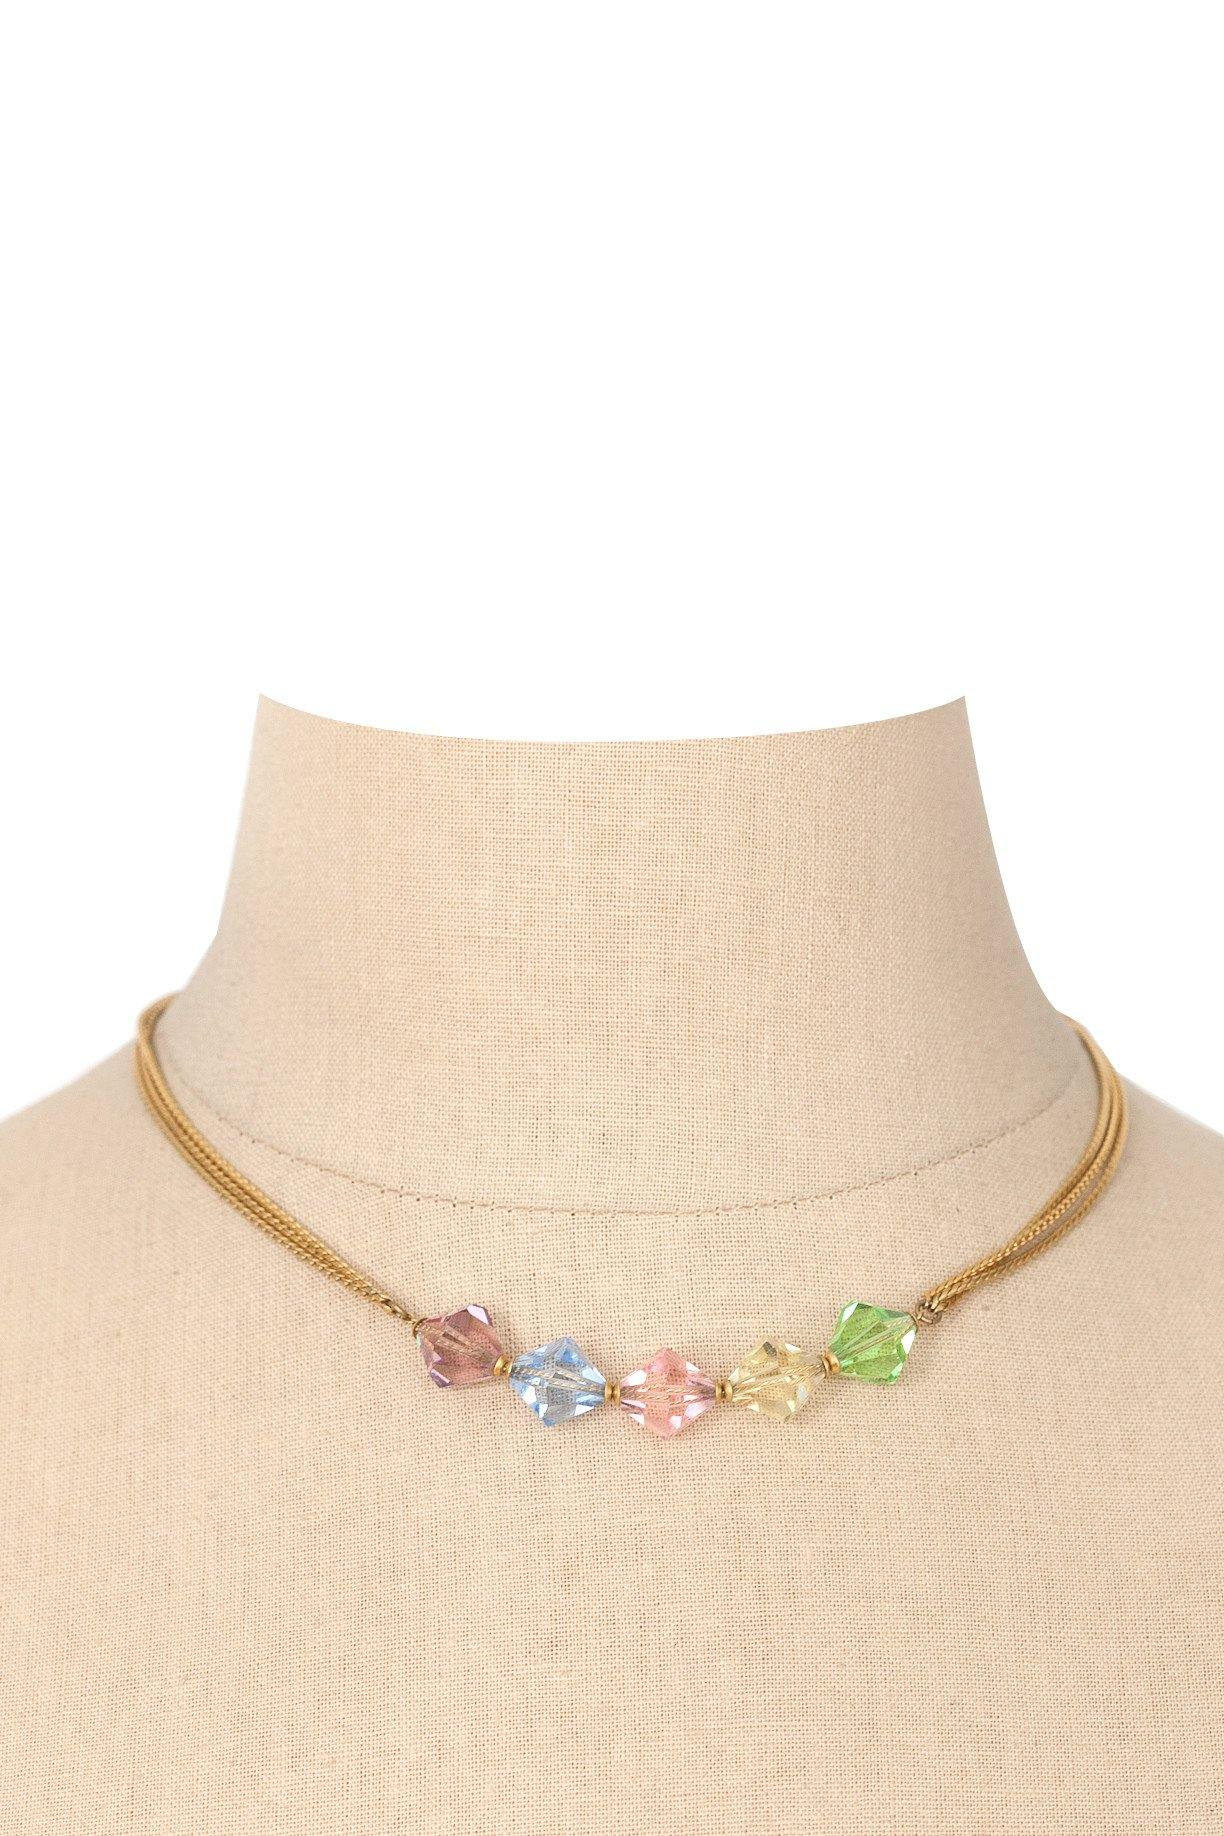 90's__Anne Klein__Beaded Necklace